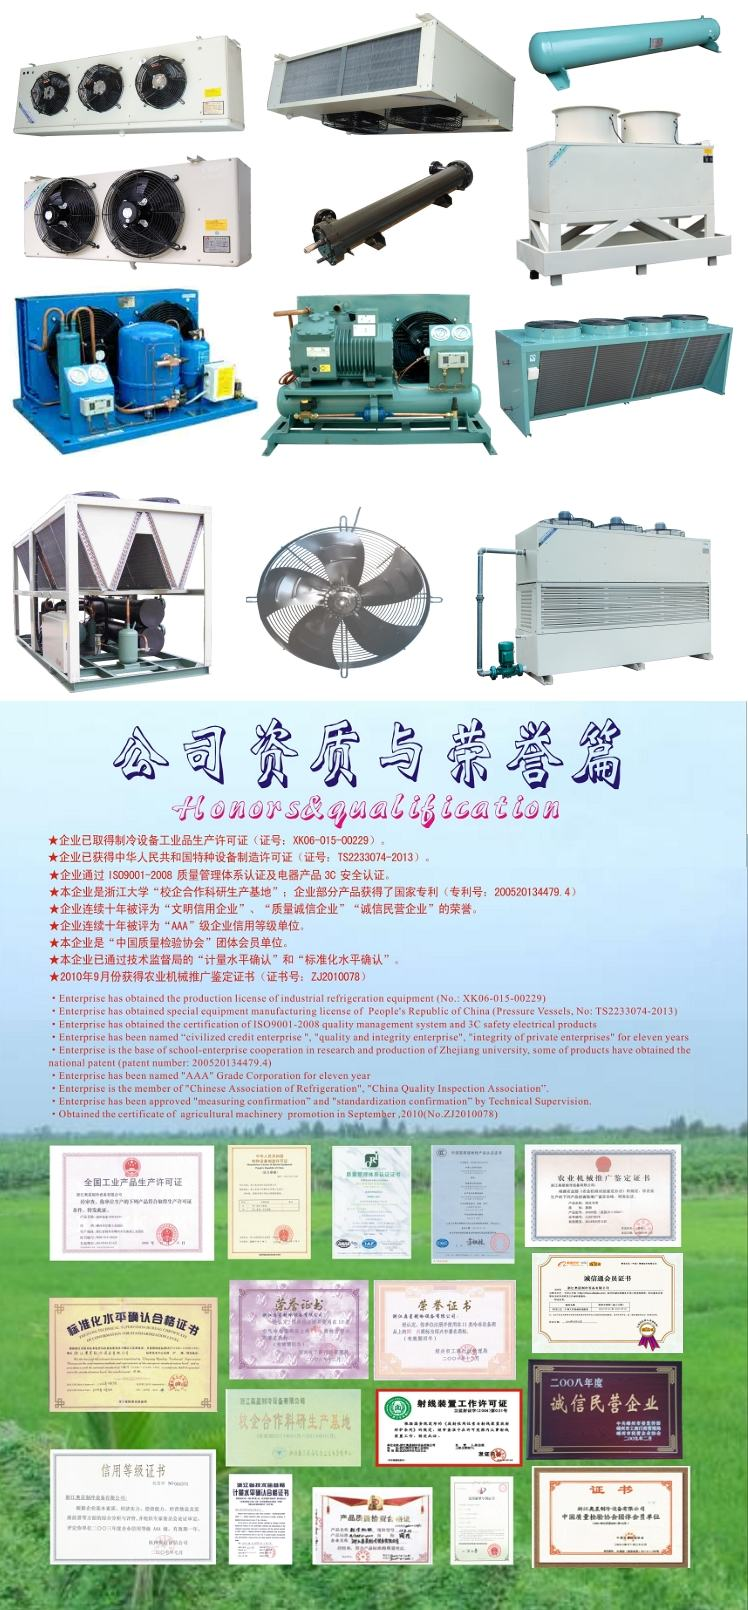 Model AX vaporizing-type condenser